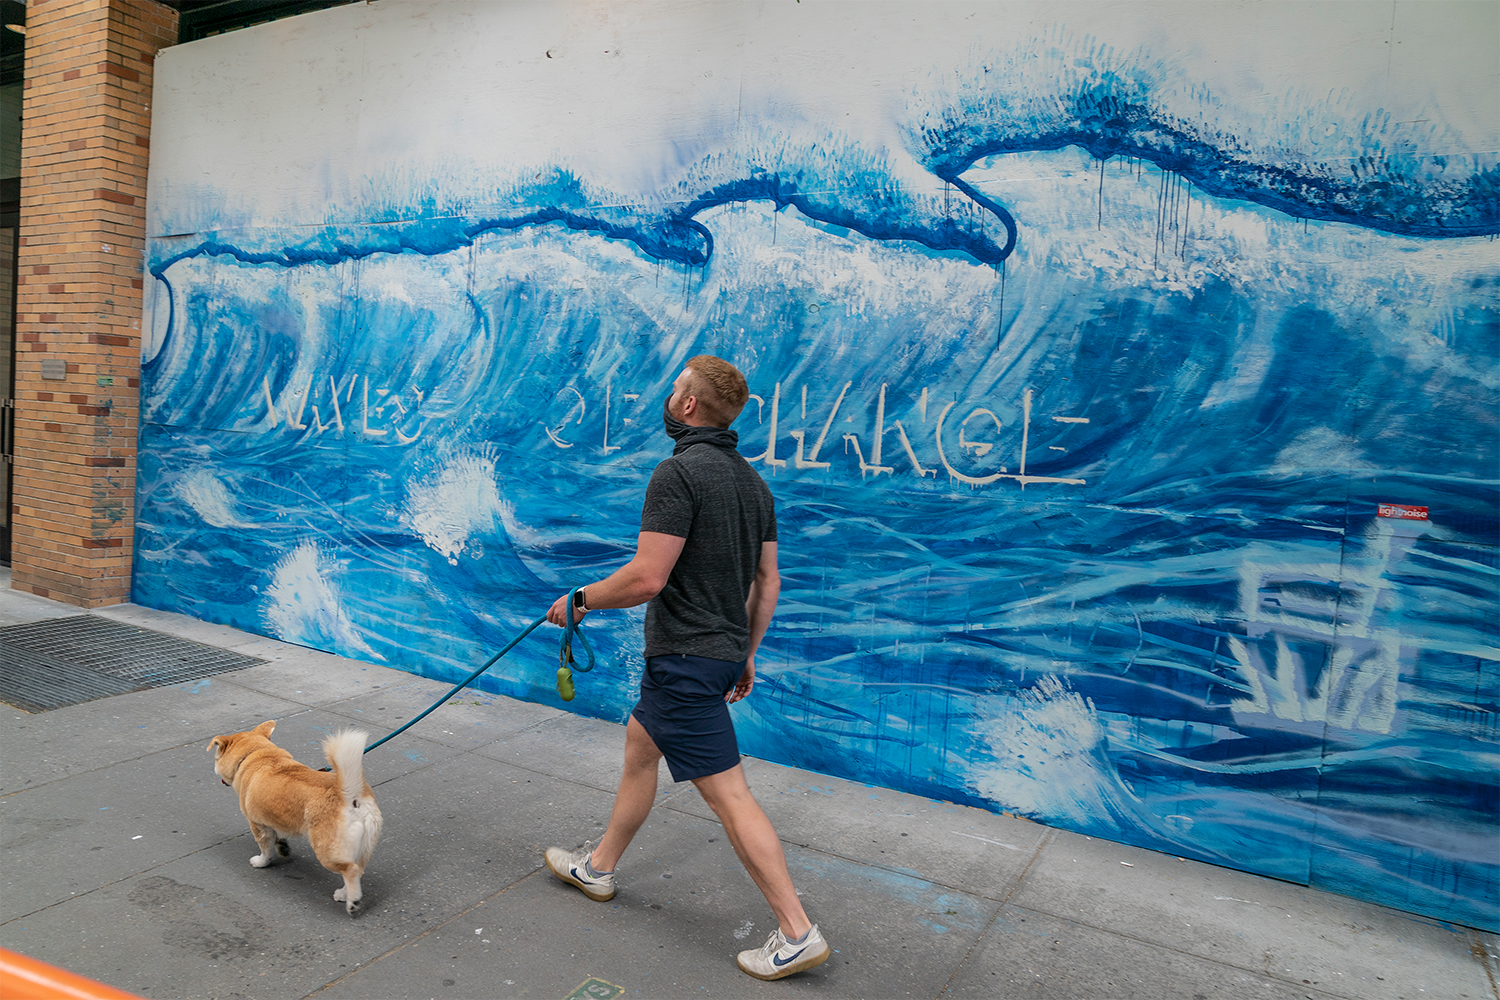 """A mural reads """"Waves of Change"""" on the plywood of Moschino in SoHo, NYC"""